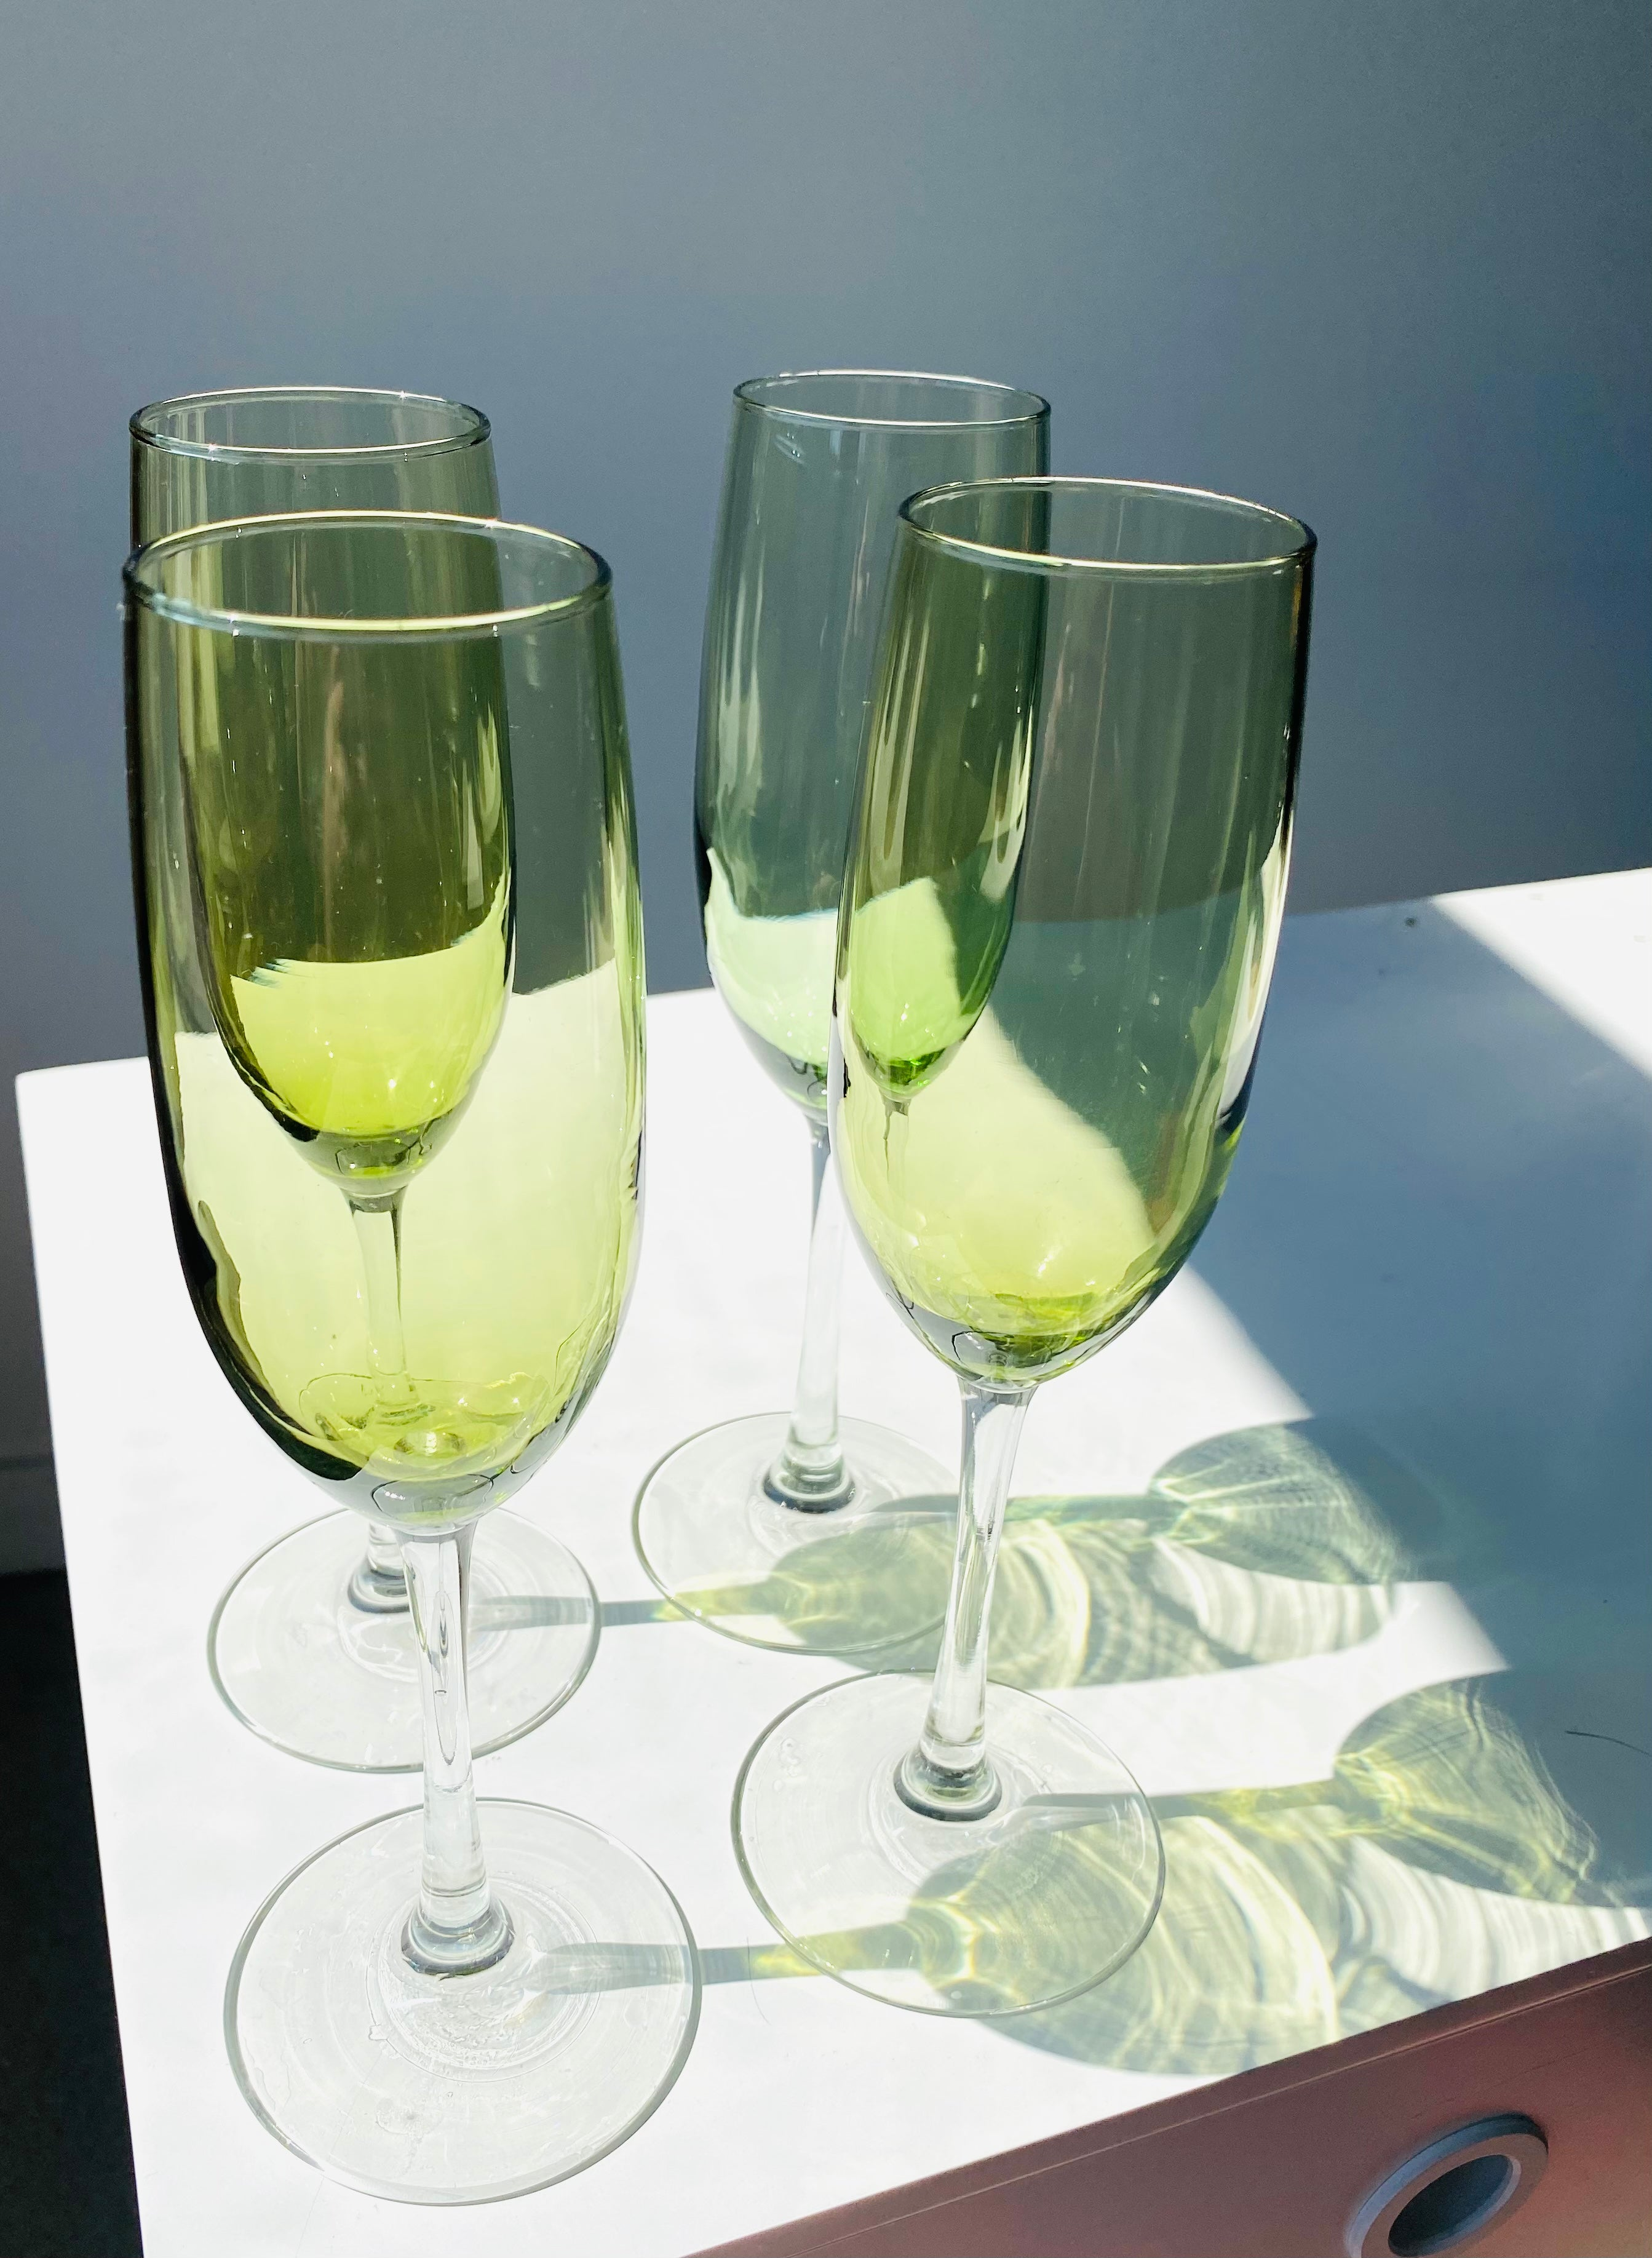 Set of 4 green champagne glasses with clear stem